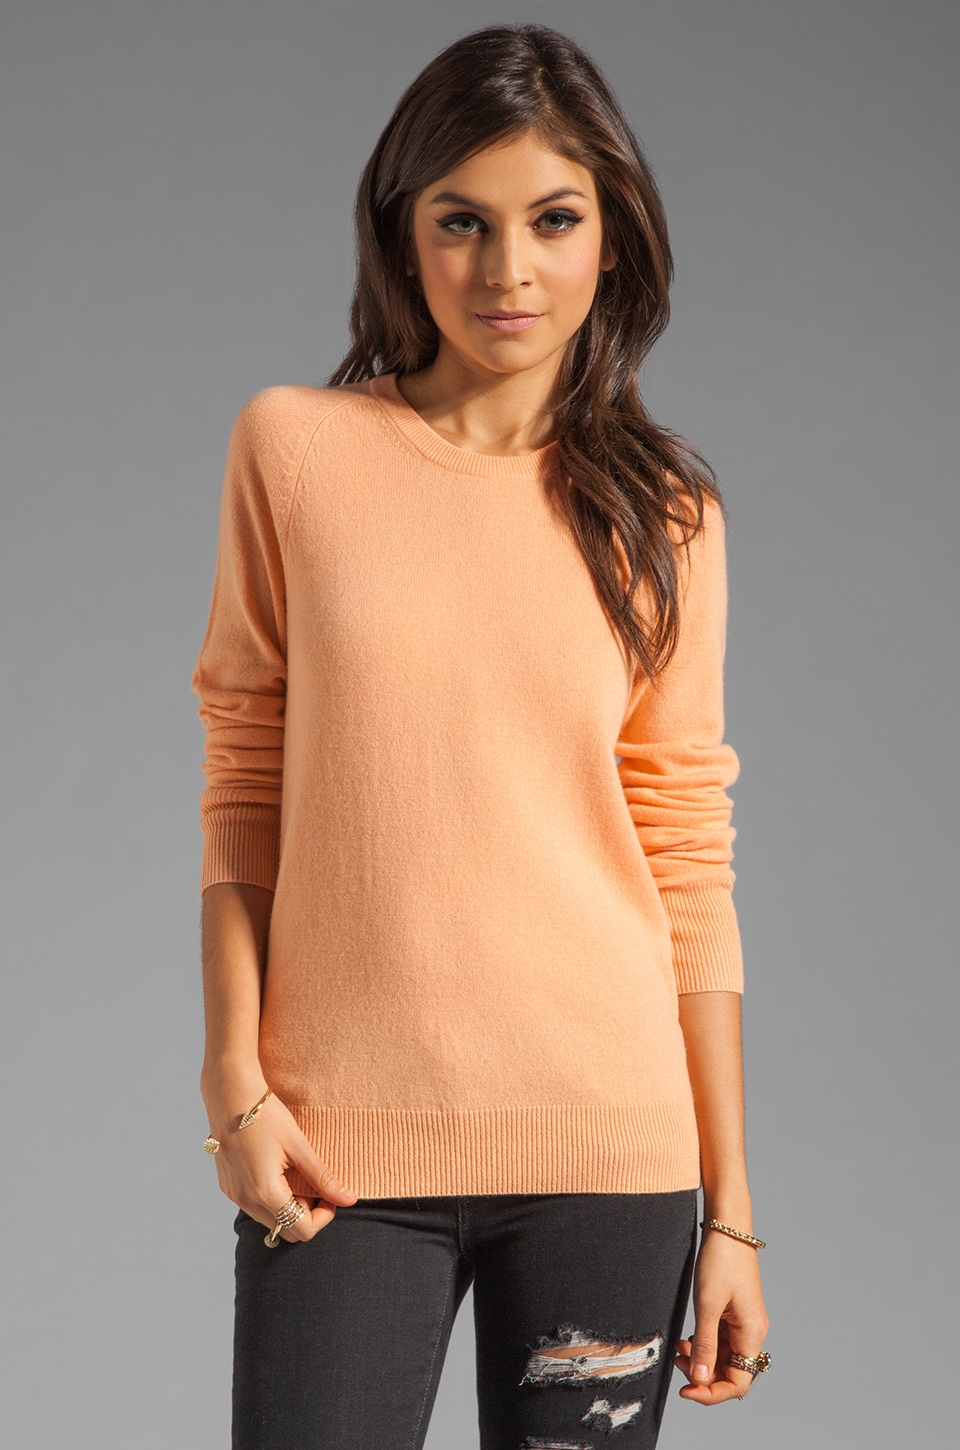 Equipment Sloan Crew Neck Sweater in Canteloupe